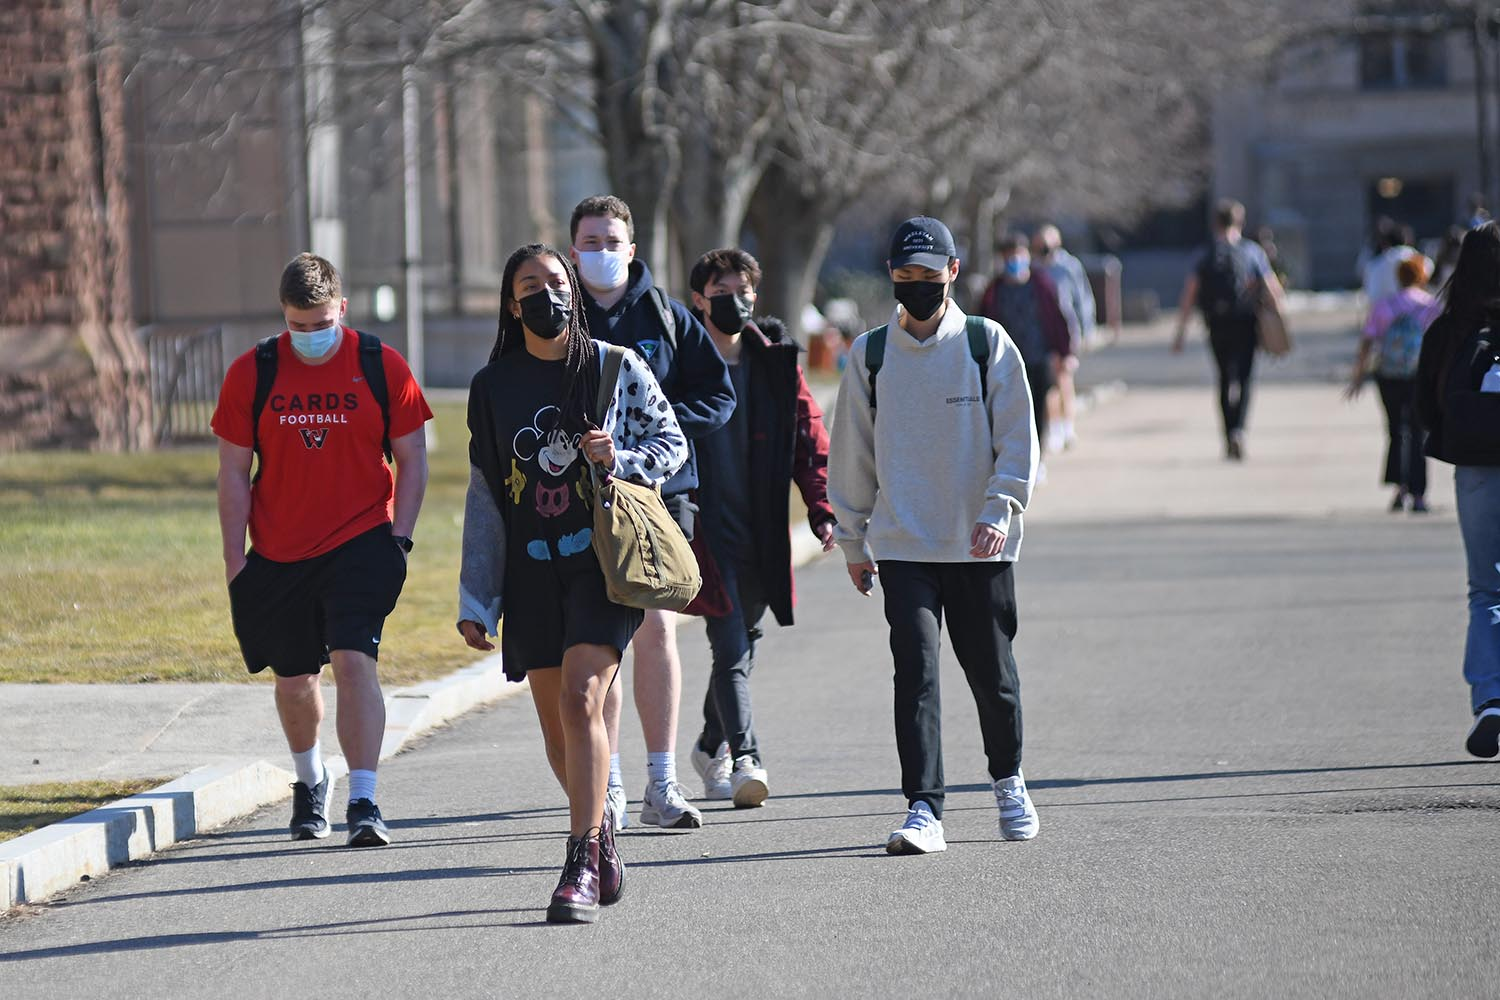 Students, who are in their fifth week of spring semester classes, continue to wear face coverings in all public places during the COVID-19 pandemic.